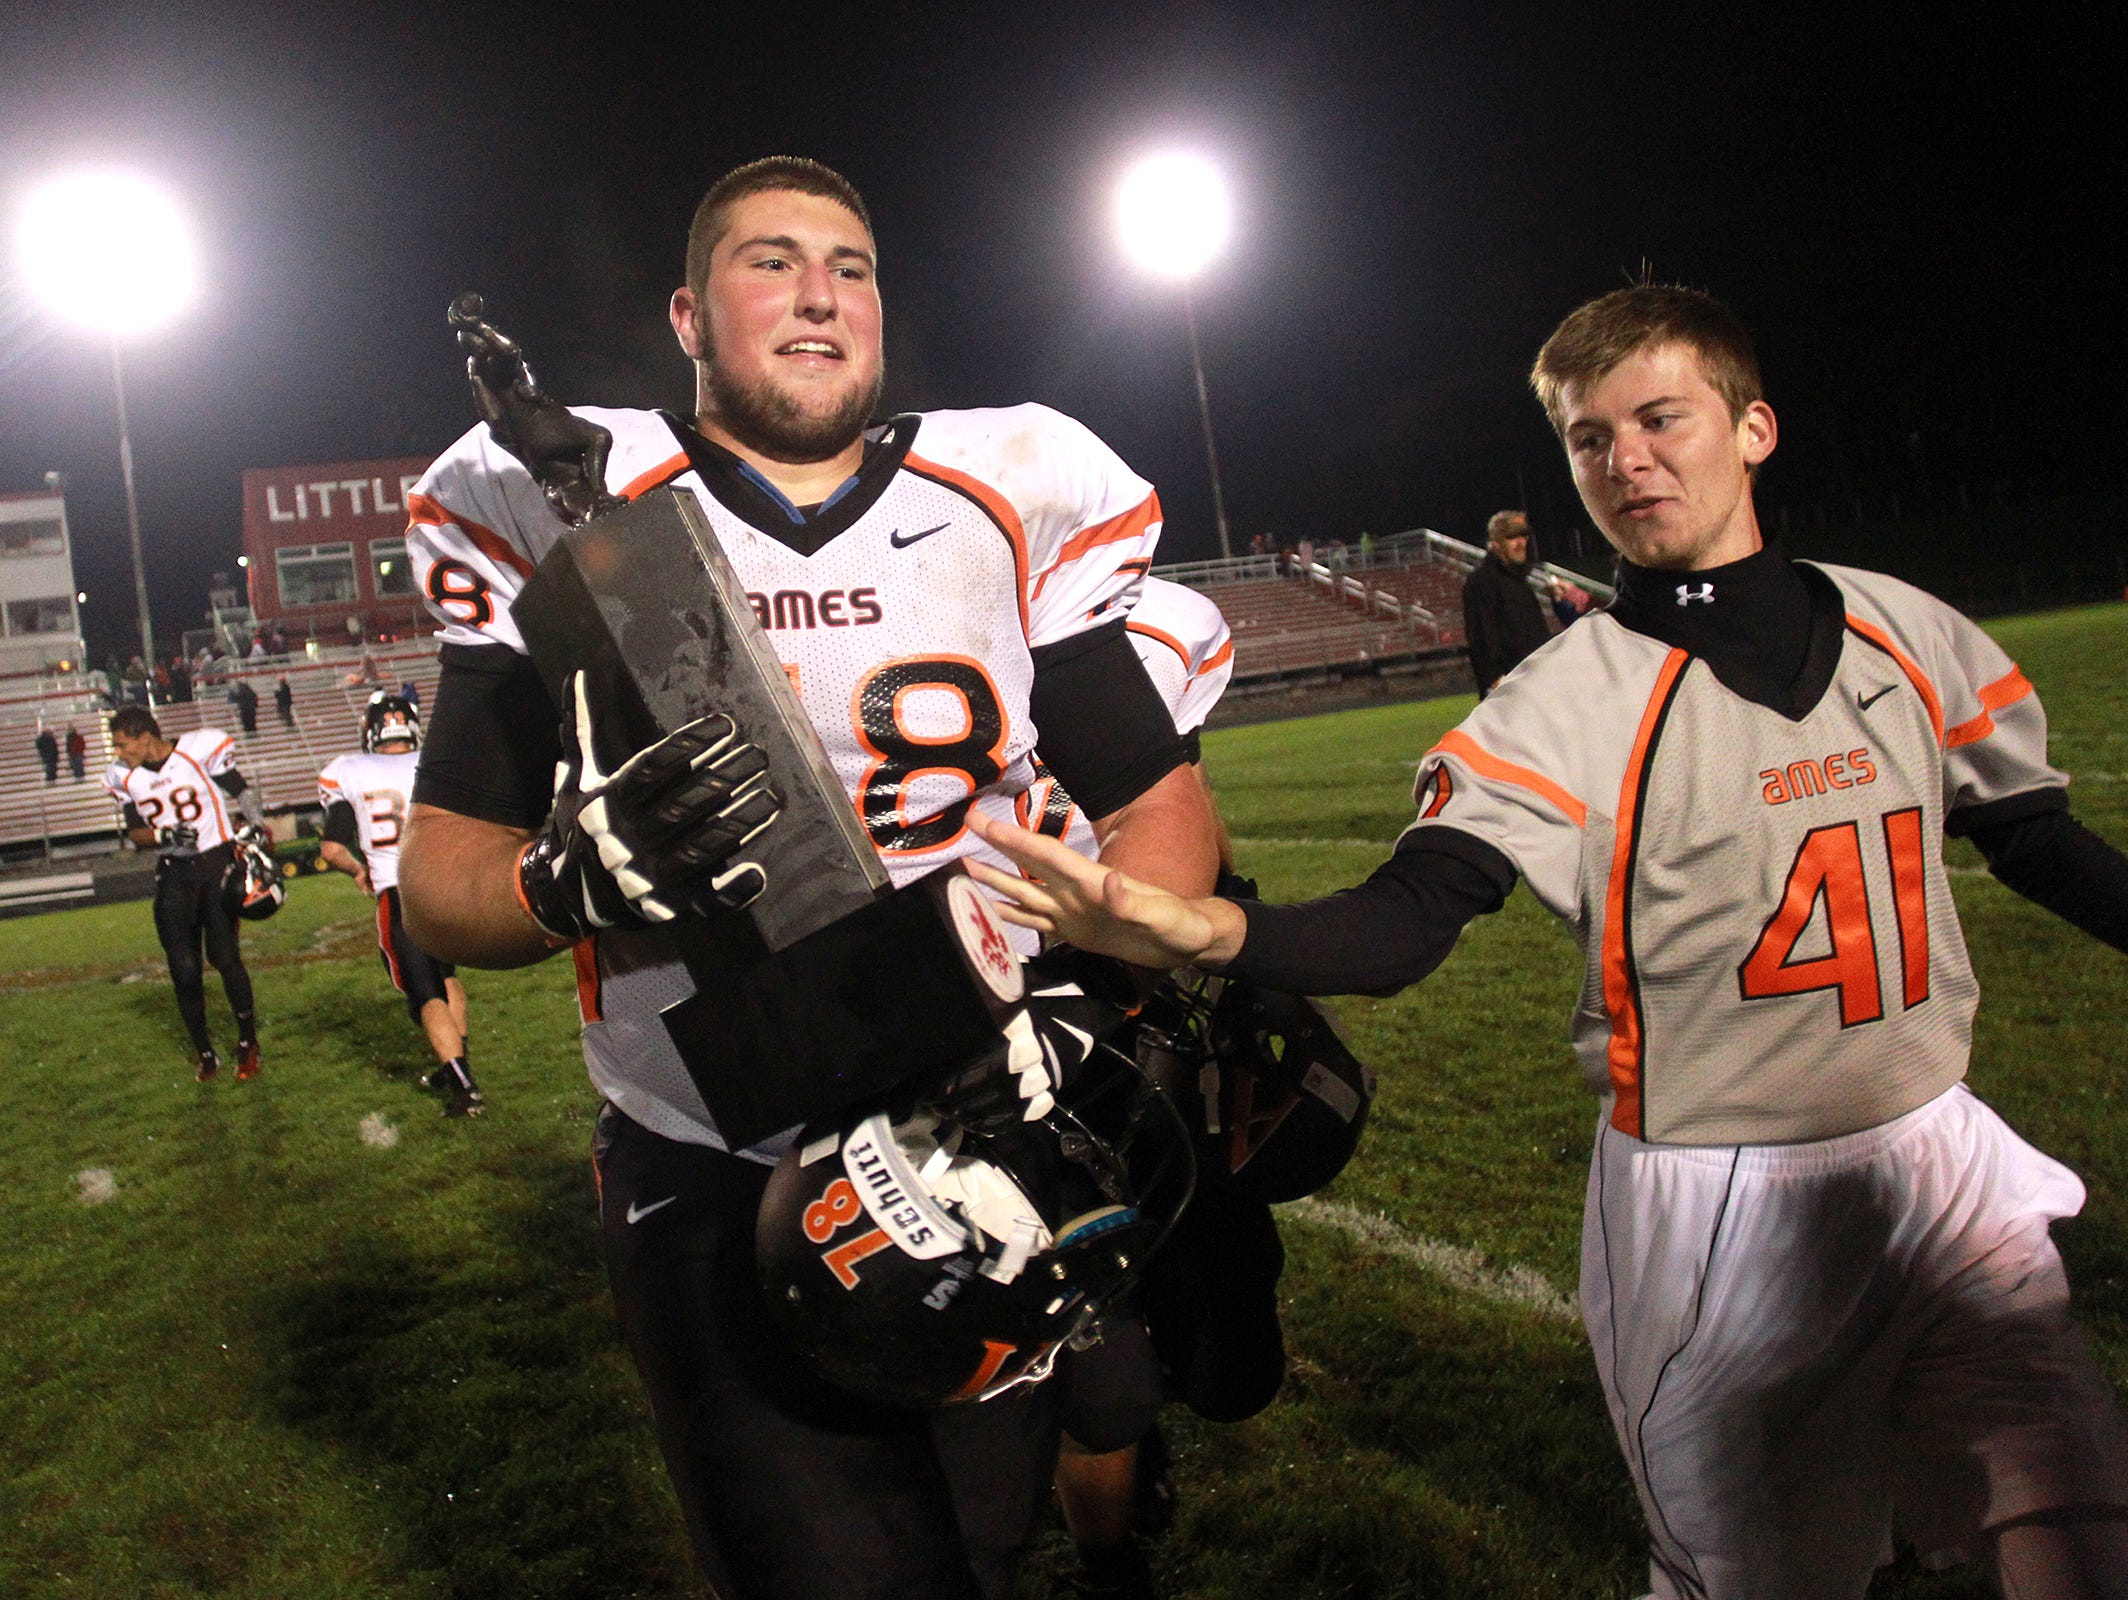 Ames' Michael Holtzbauer carries the Little Cy-Little Hawk trophy to fans following the Little Cyclones' 44-20 win at City High on Friday, Sept. 12, 2014. David Scrivner / Iowa City Press-Citizen